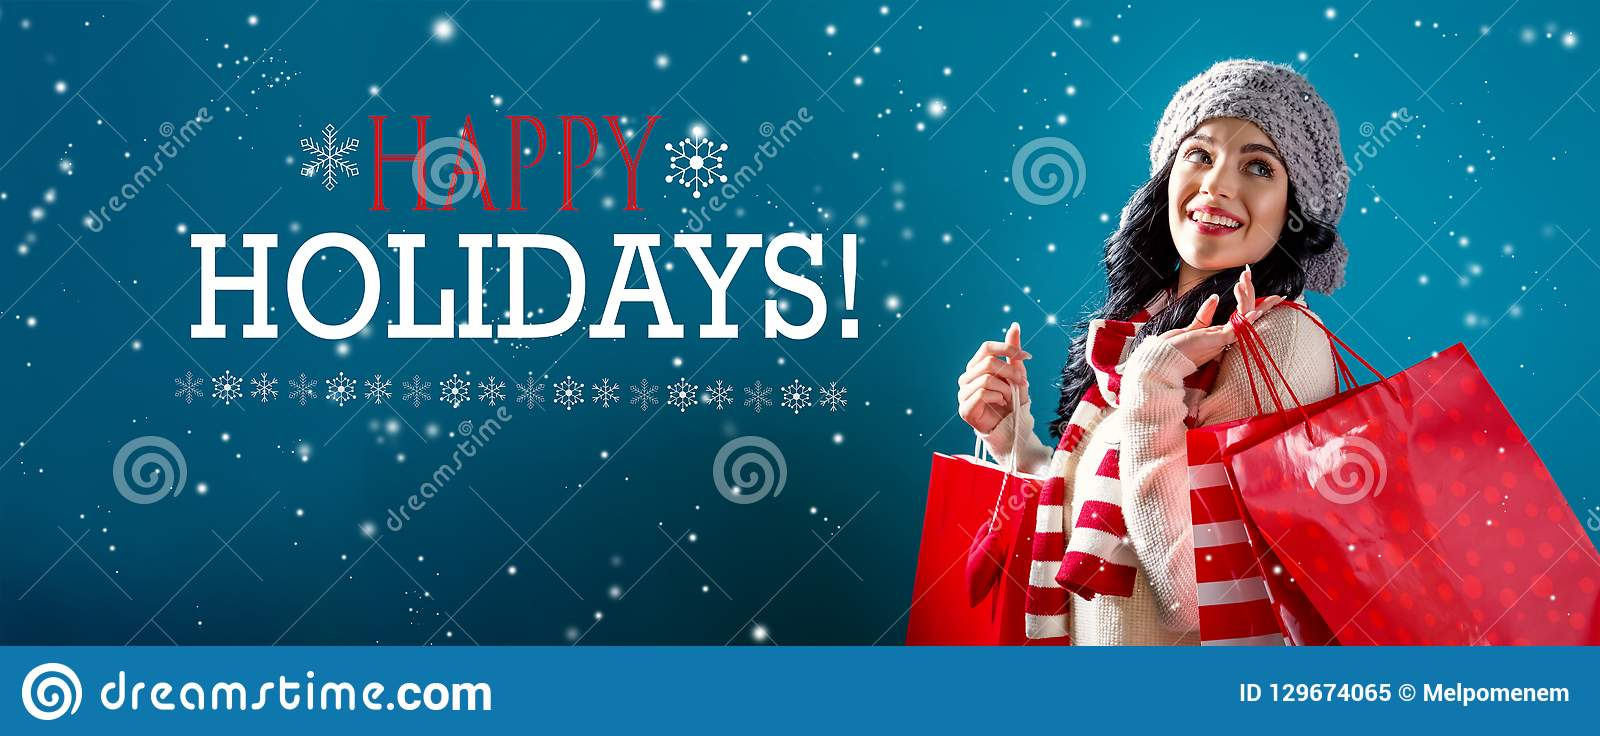 Happy holidays message with woman holding shopping bags